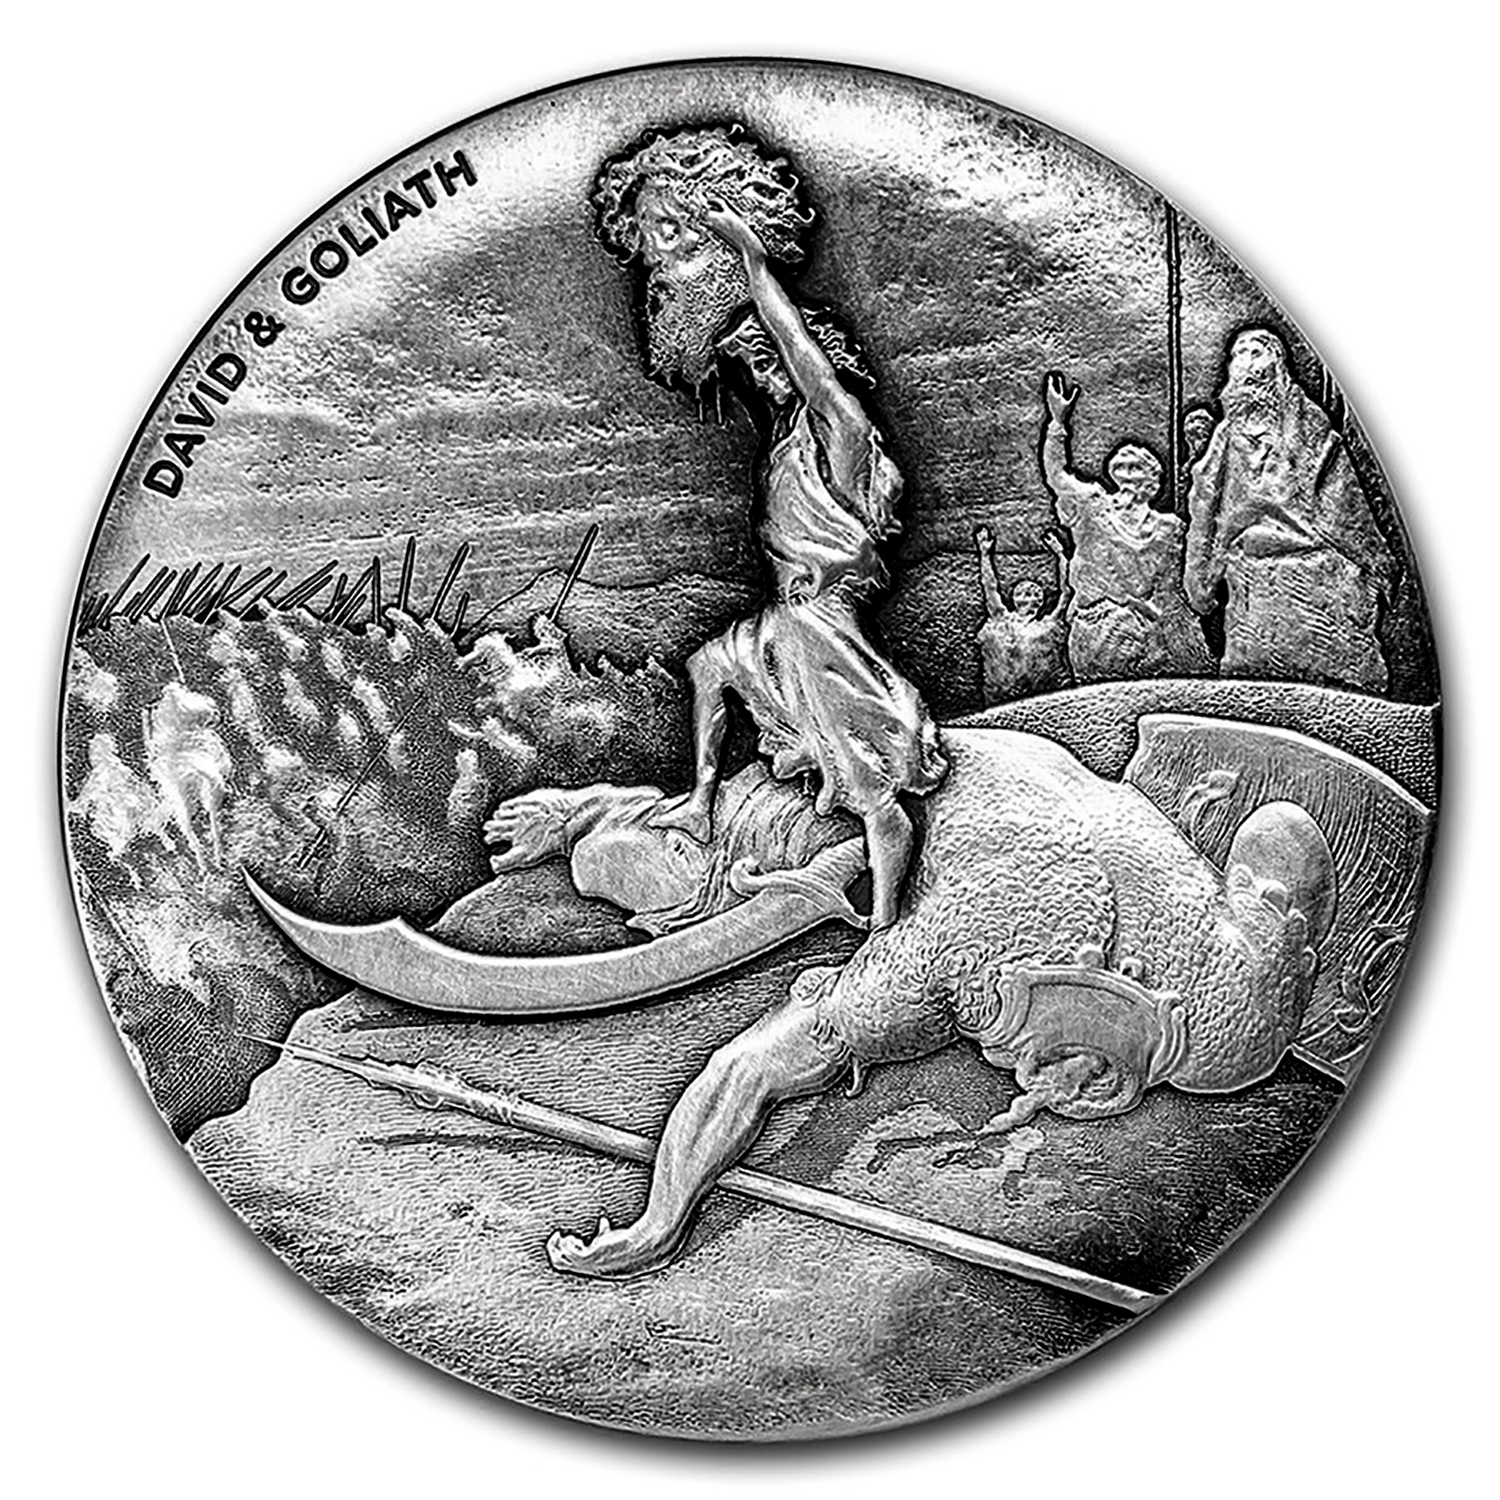 2 oz Silver Coin - Biblical Series (David & Goliath)